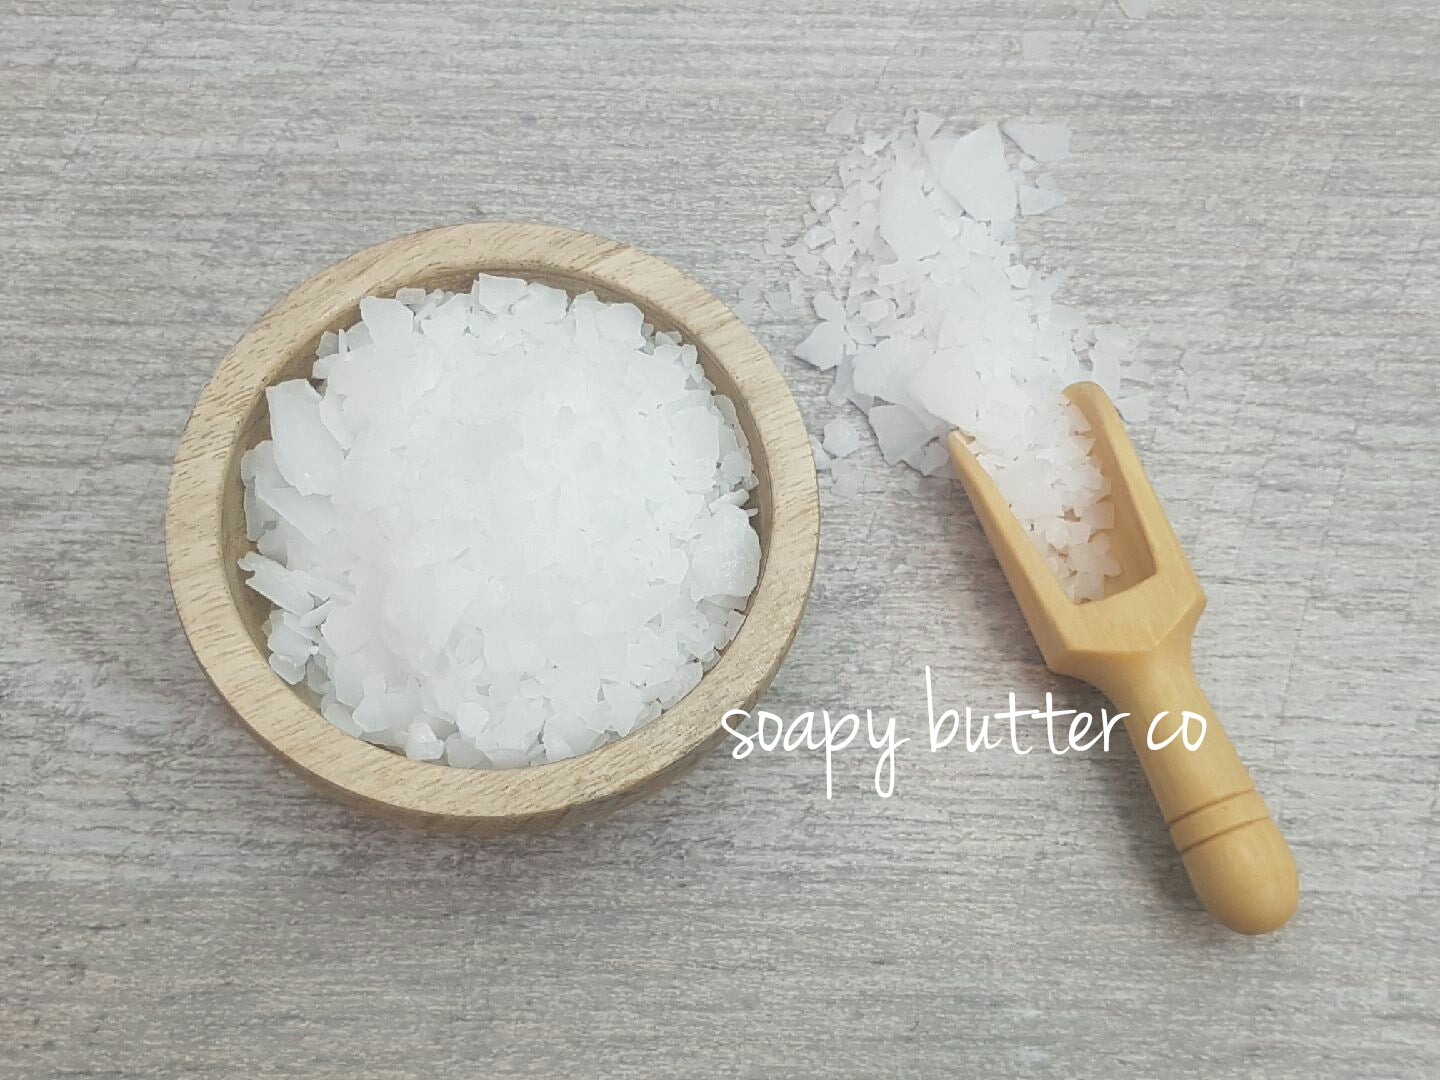 Magnesium flakes soapy butter co Melbourne